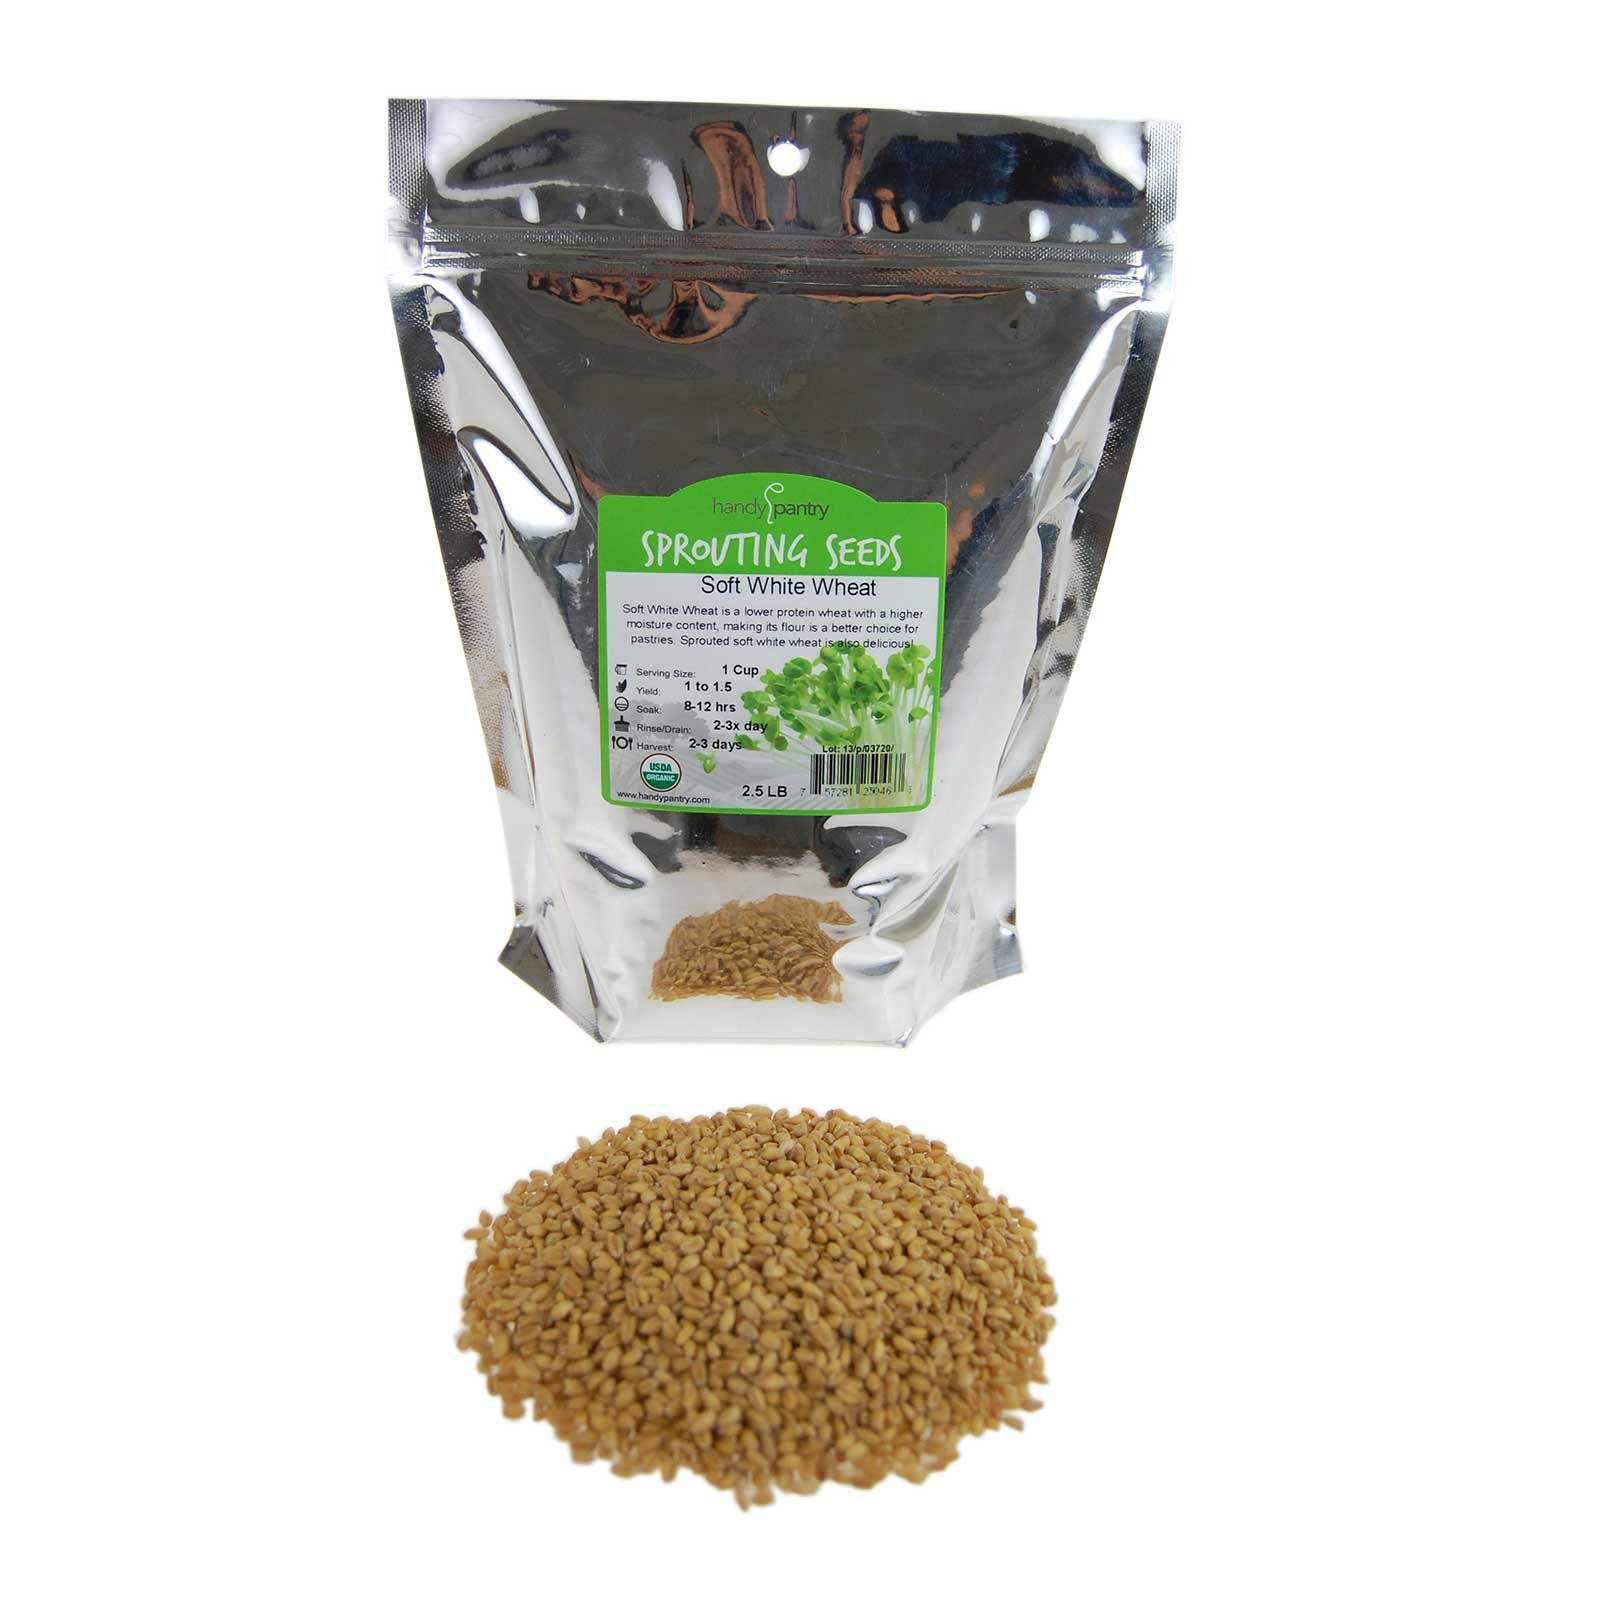 Soft White Wheat - Organic - 2.5 Lbs. Resealable Pouch - Handy Pantry Brand - Perfect for Food Storage, Flour, Baking, Sprouting & More